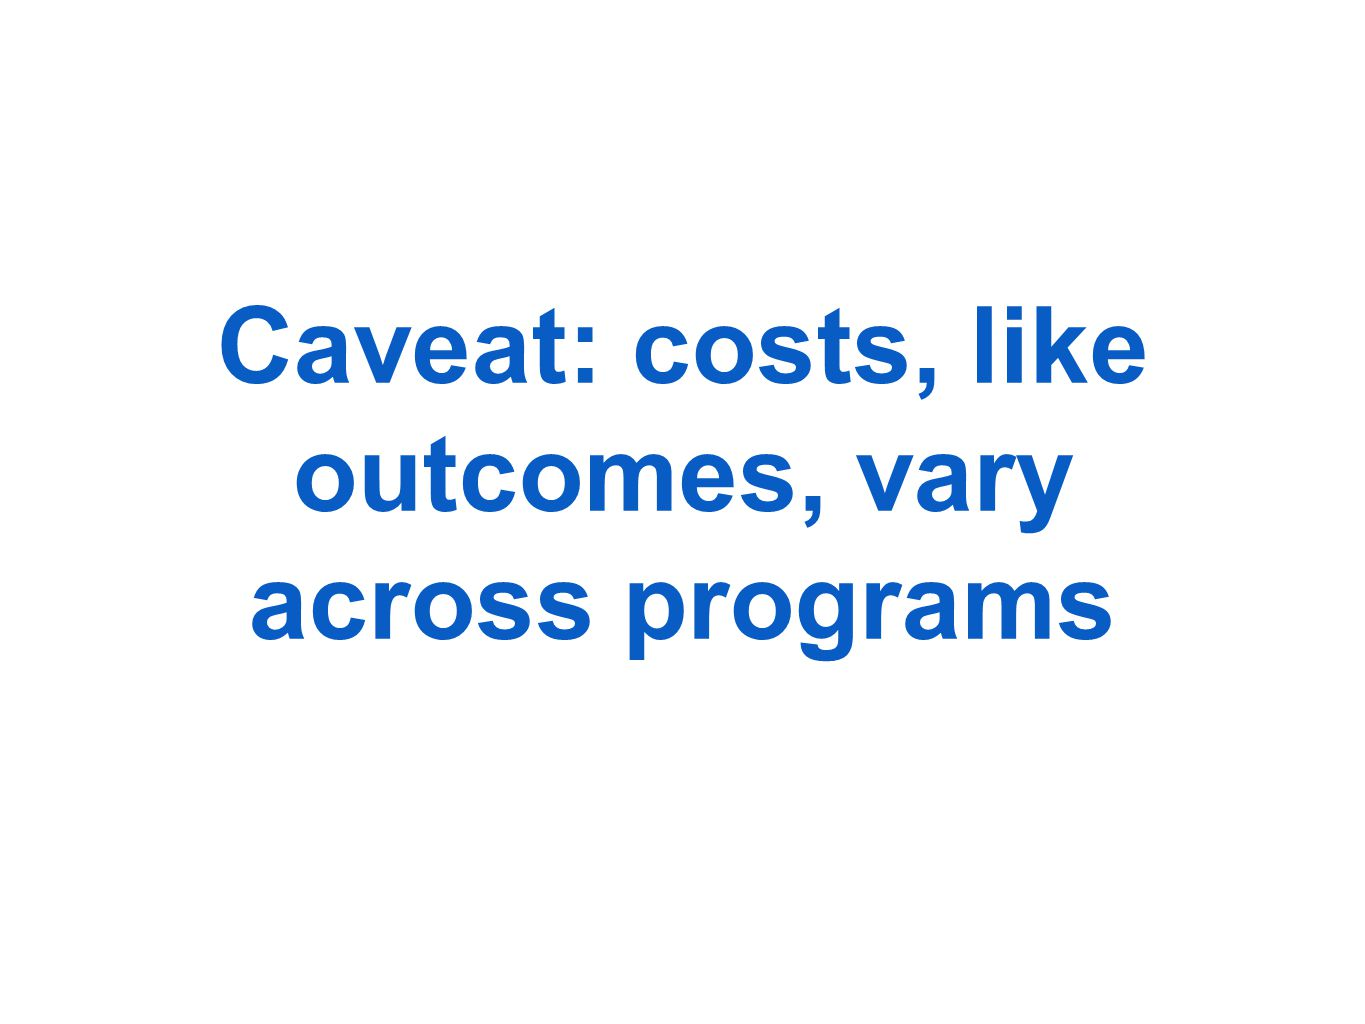 Caveat: costs, like outcomes, vary across programs